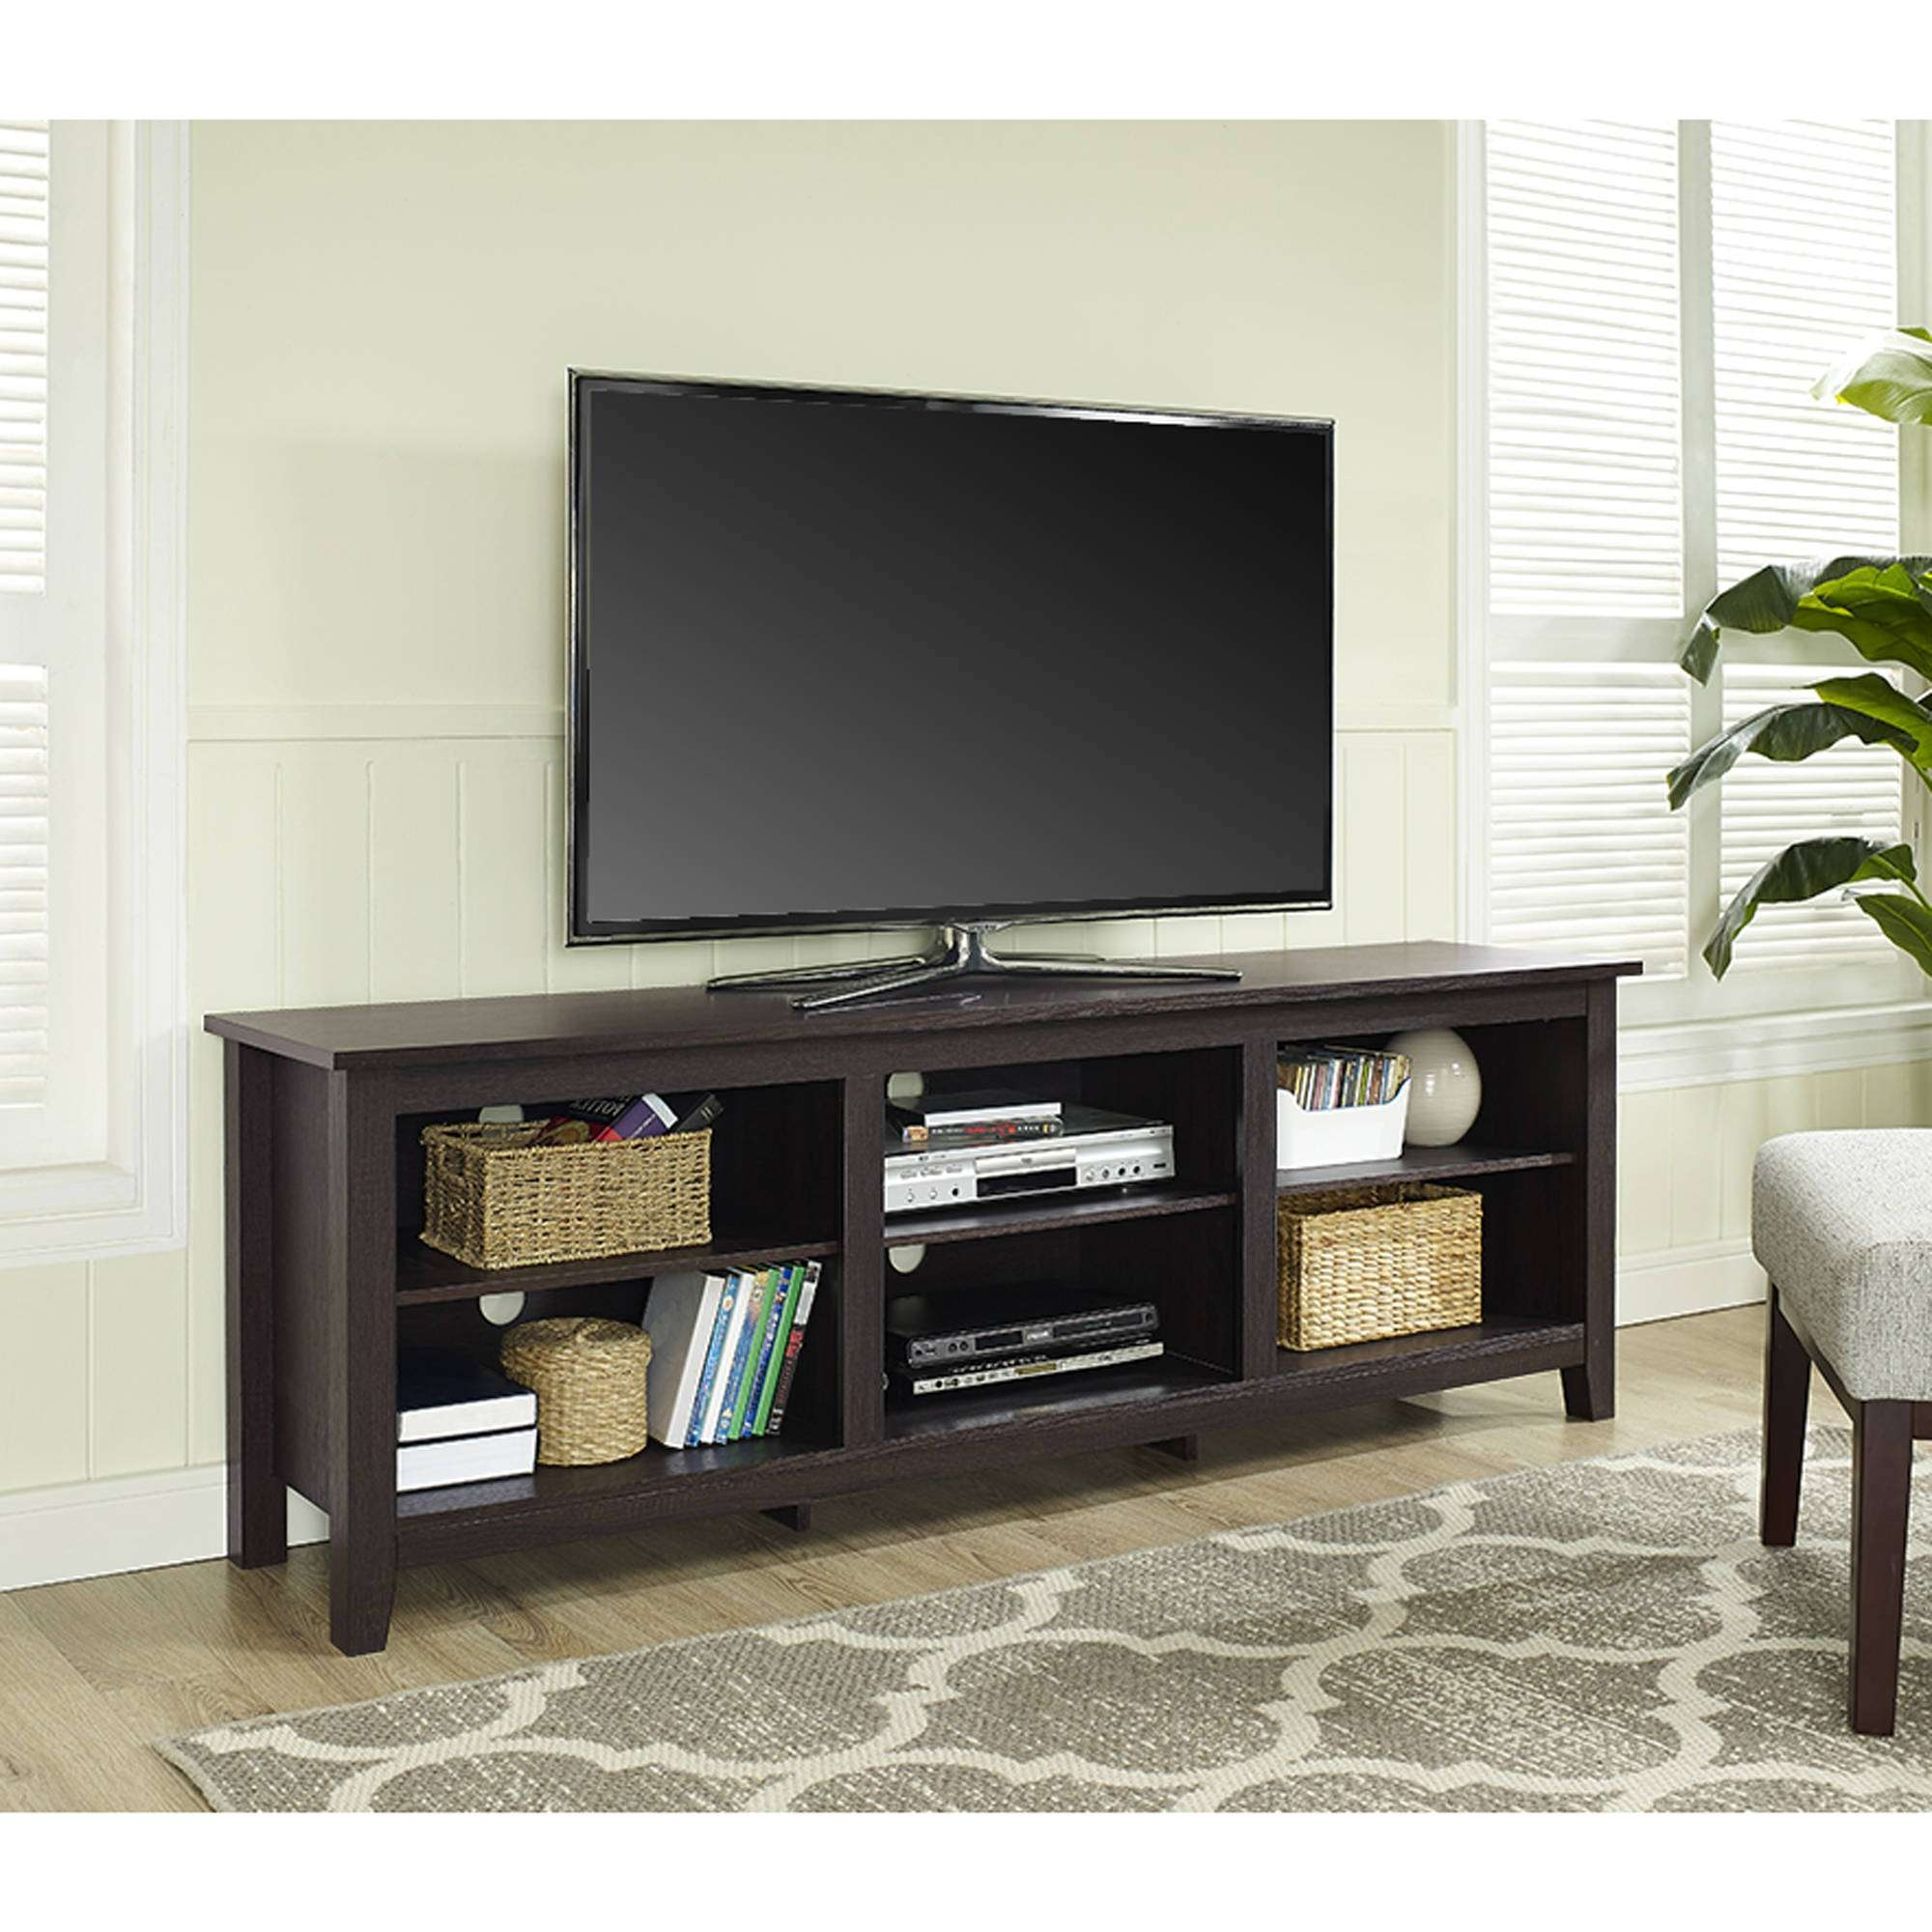 "Ameriwood Home Clark Tv Stand For Tvs Up To 70"", Espresso For Tv Stands For 70 Inch Tvs (View 2 of 15)"